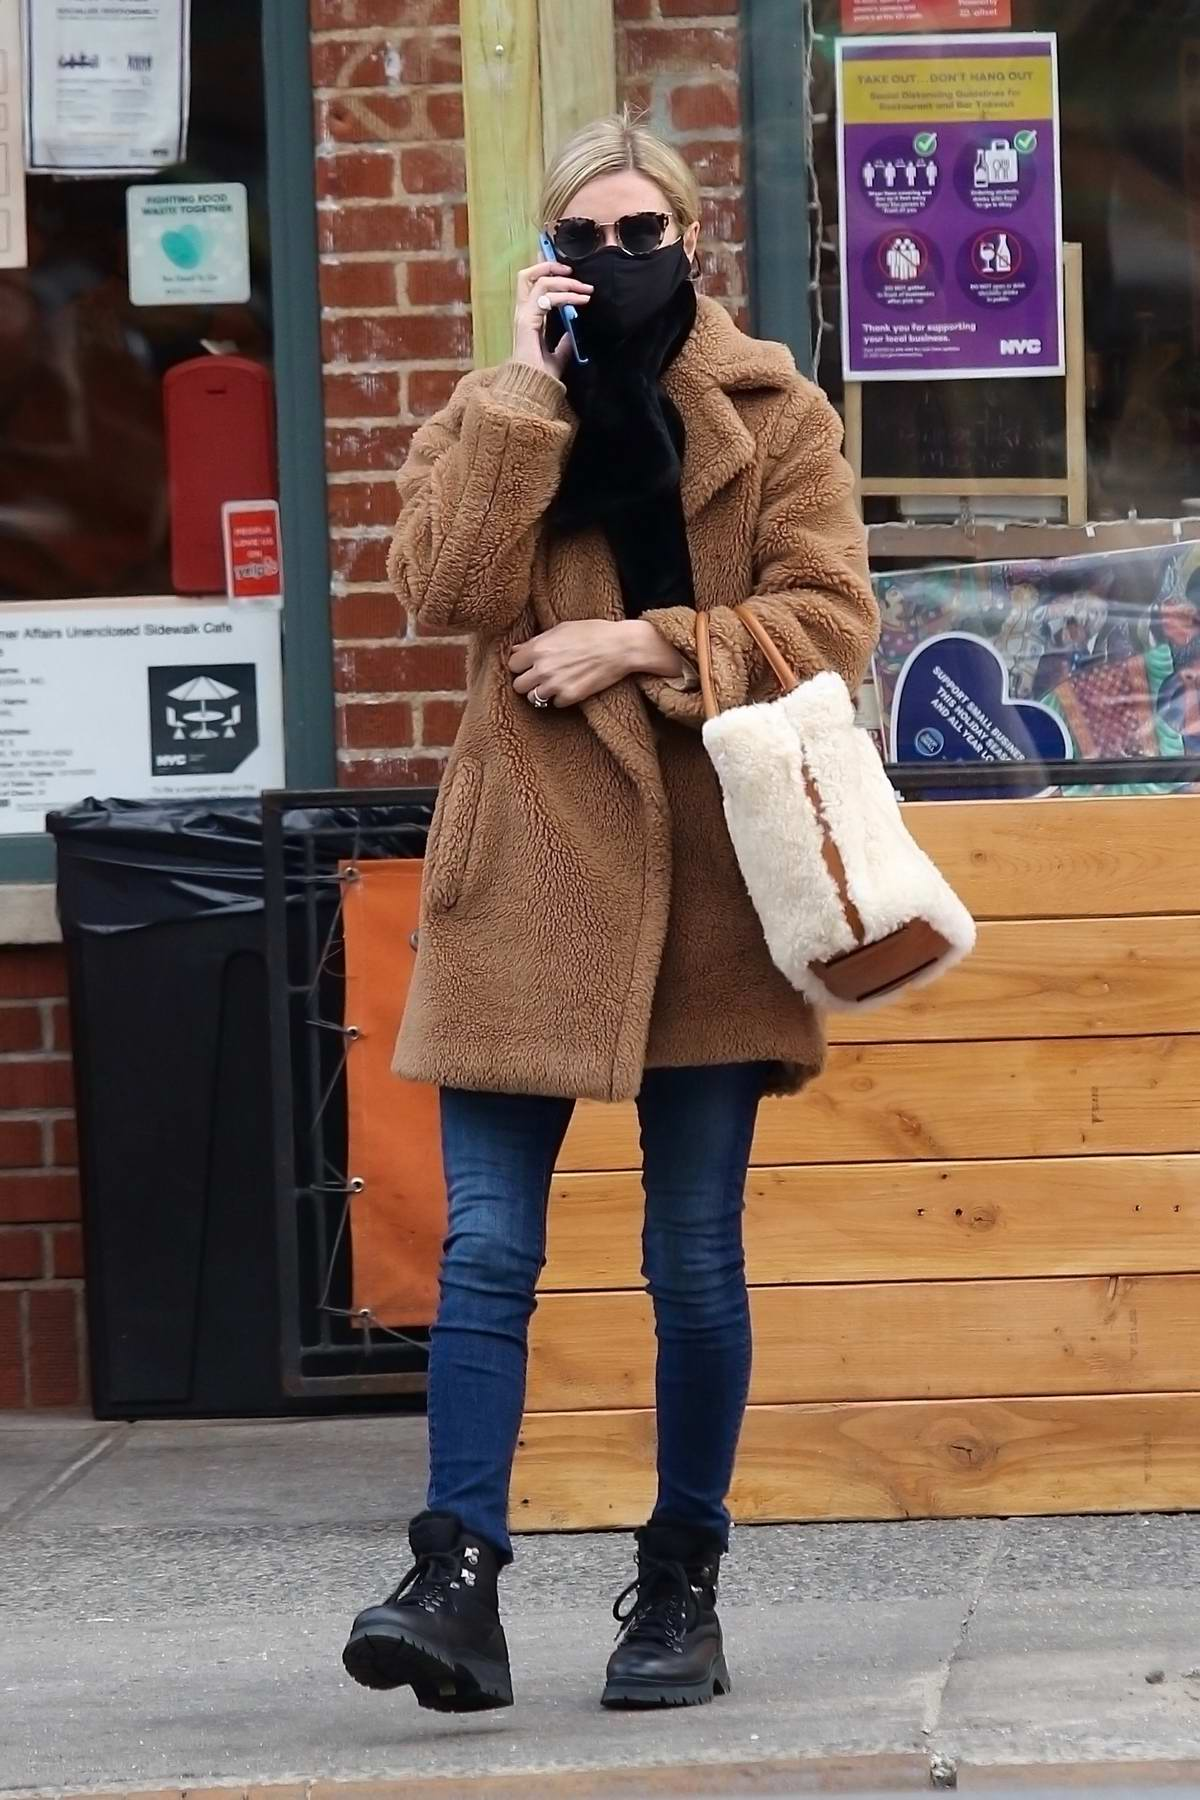 Nicky Hilton looks stylish and bundled up while shopping in Manhattan's West Village area in New York City